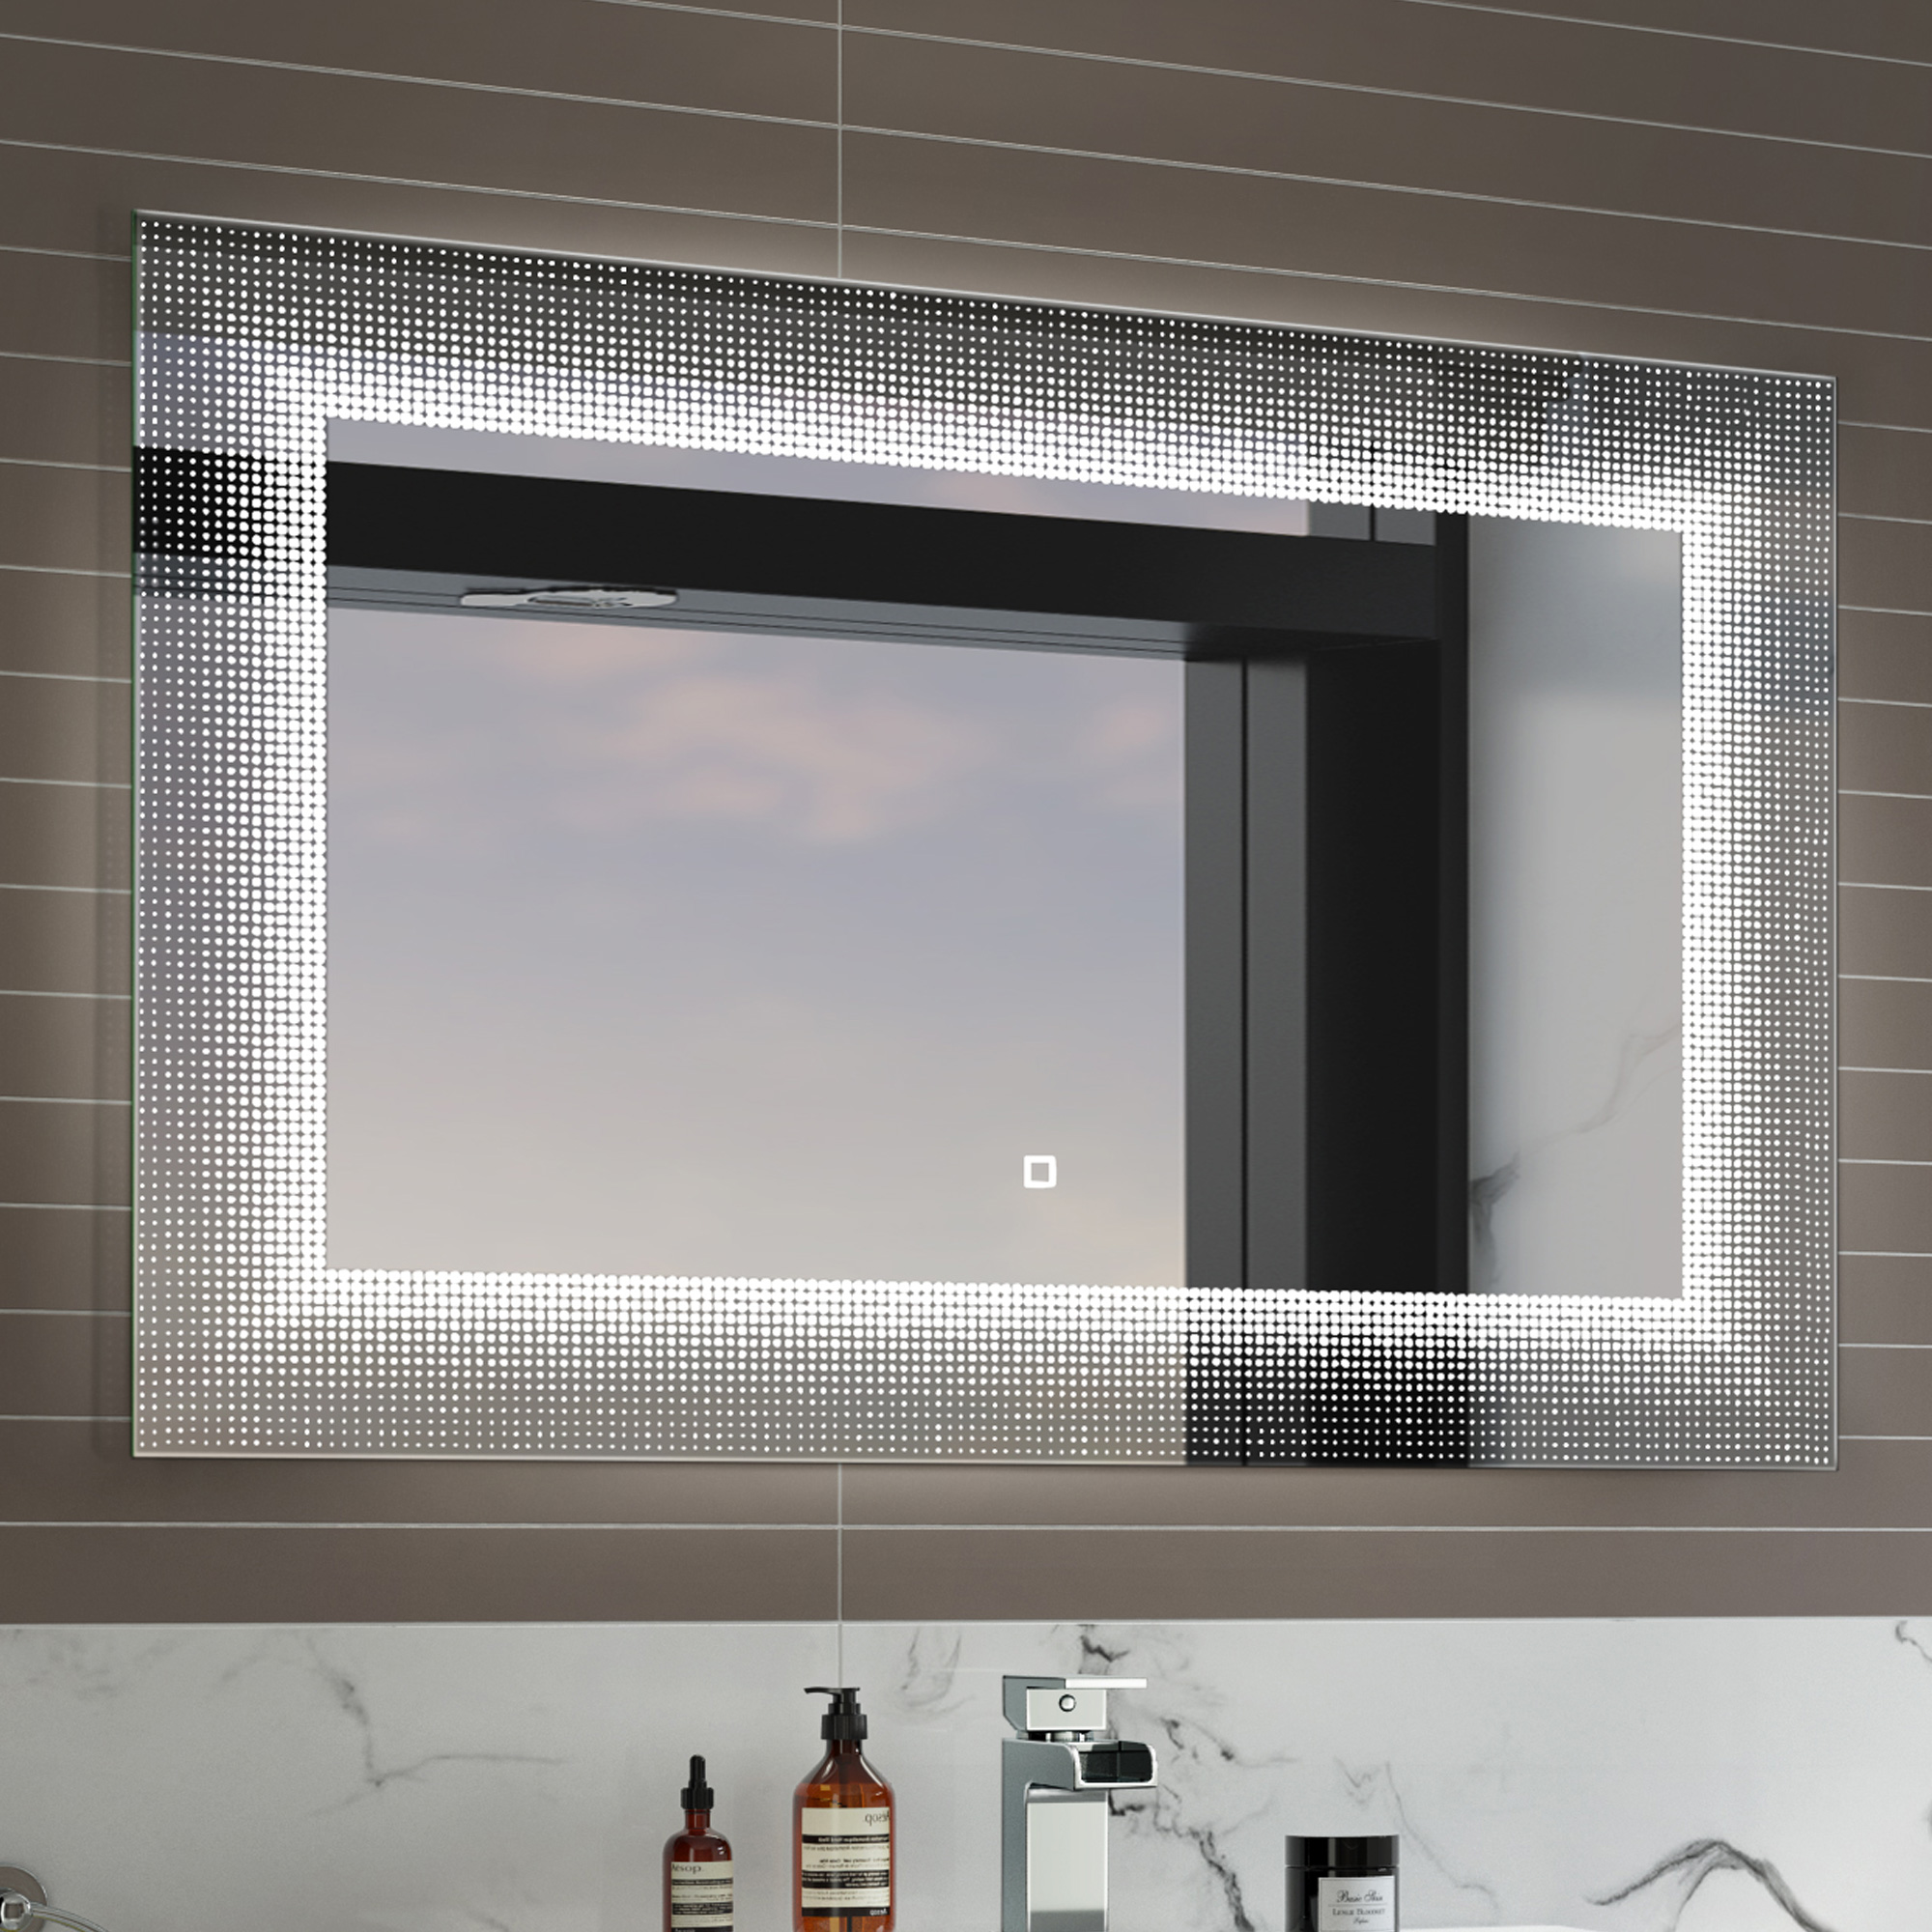 small mirrors round attachment mirror bathrooms ikea luxury led lights bathroom of furniture design